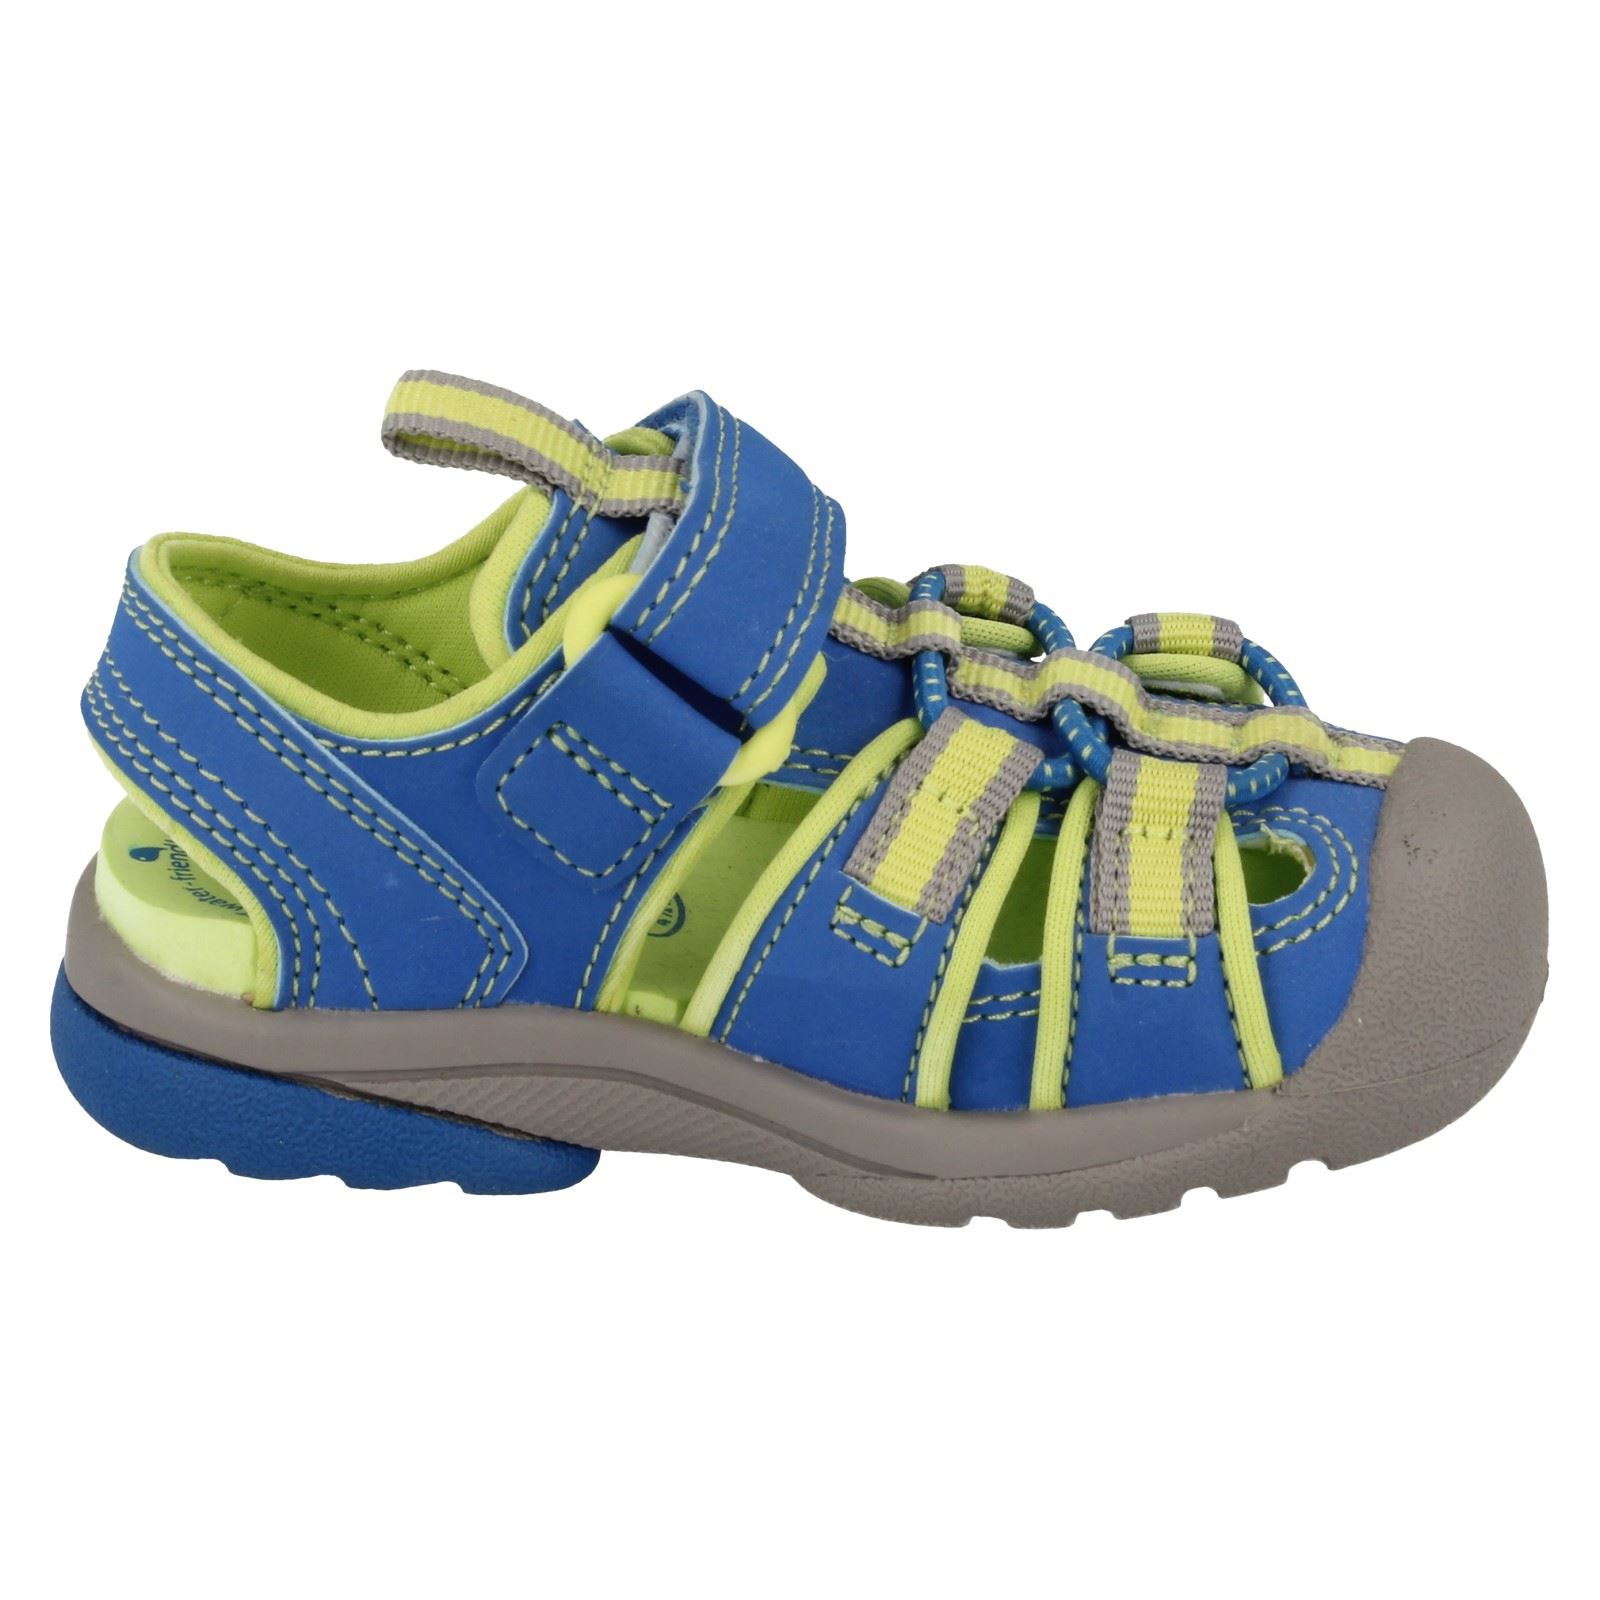 9a3e7e203c7c Childrens Unisex Clarks Closed Toe Sandals  Beach Tide